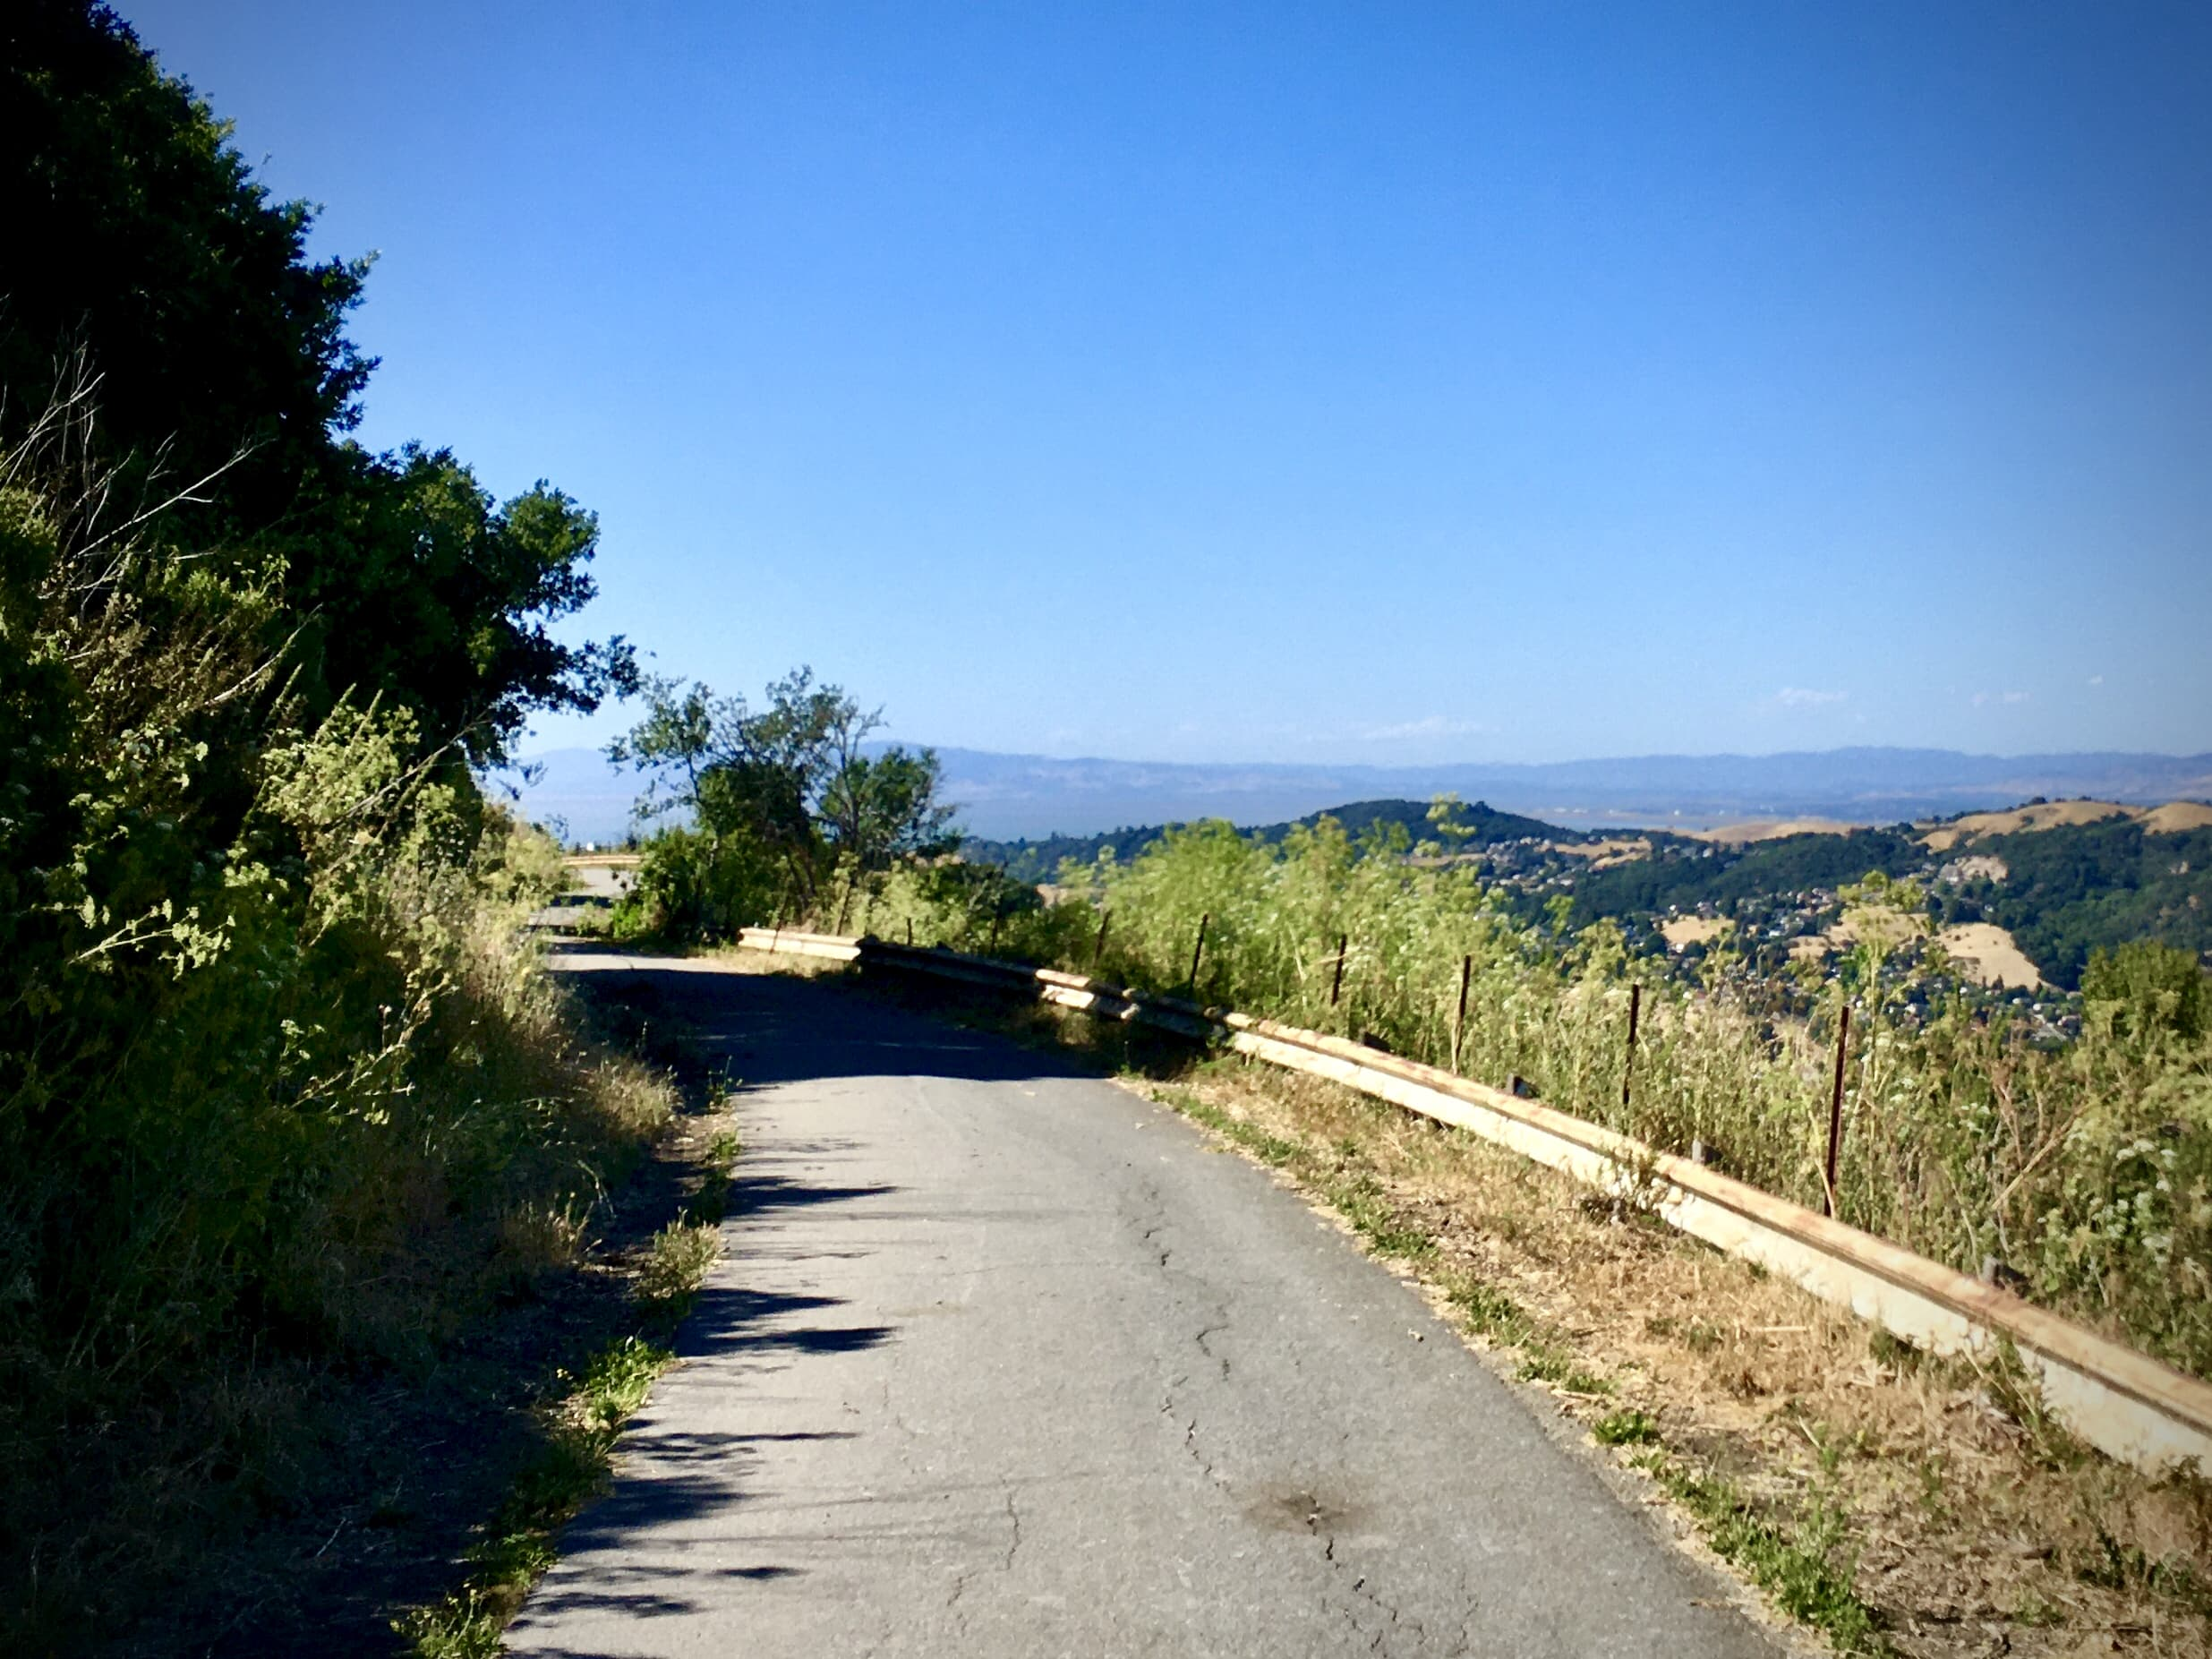 Cury, cycling road in the hills near Oakland, California.